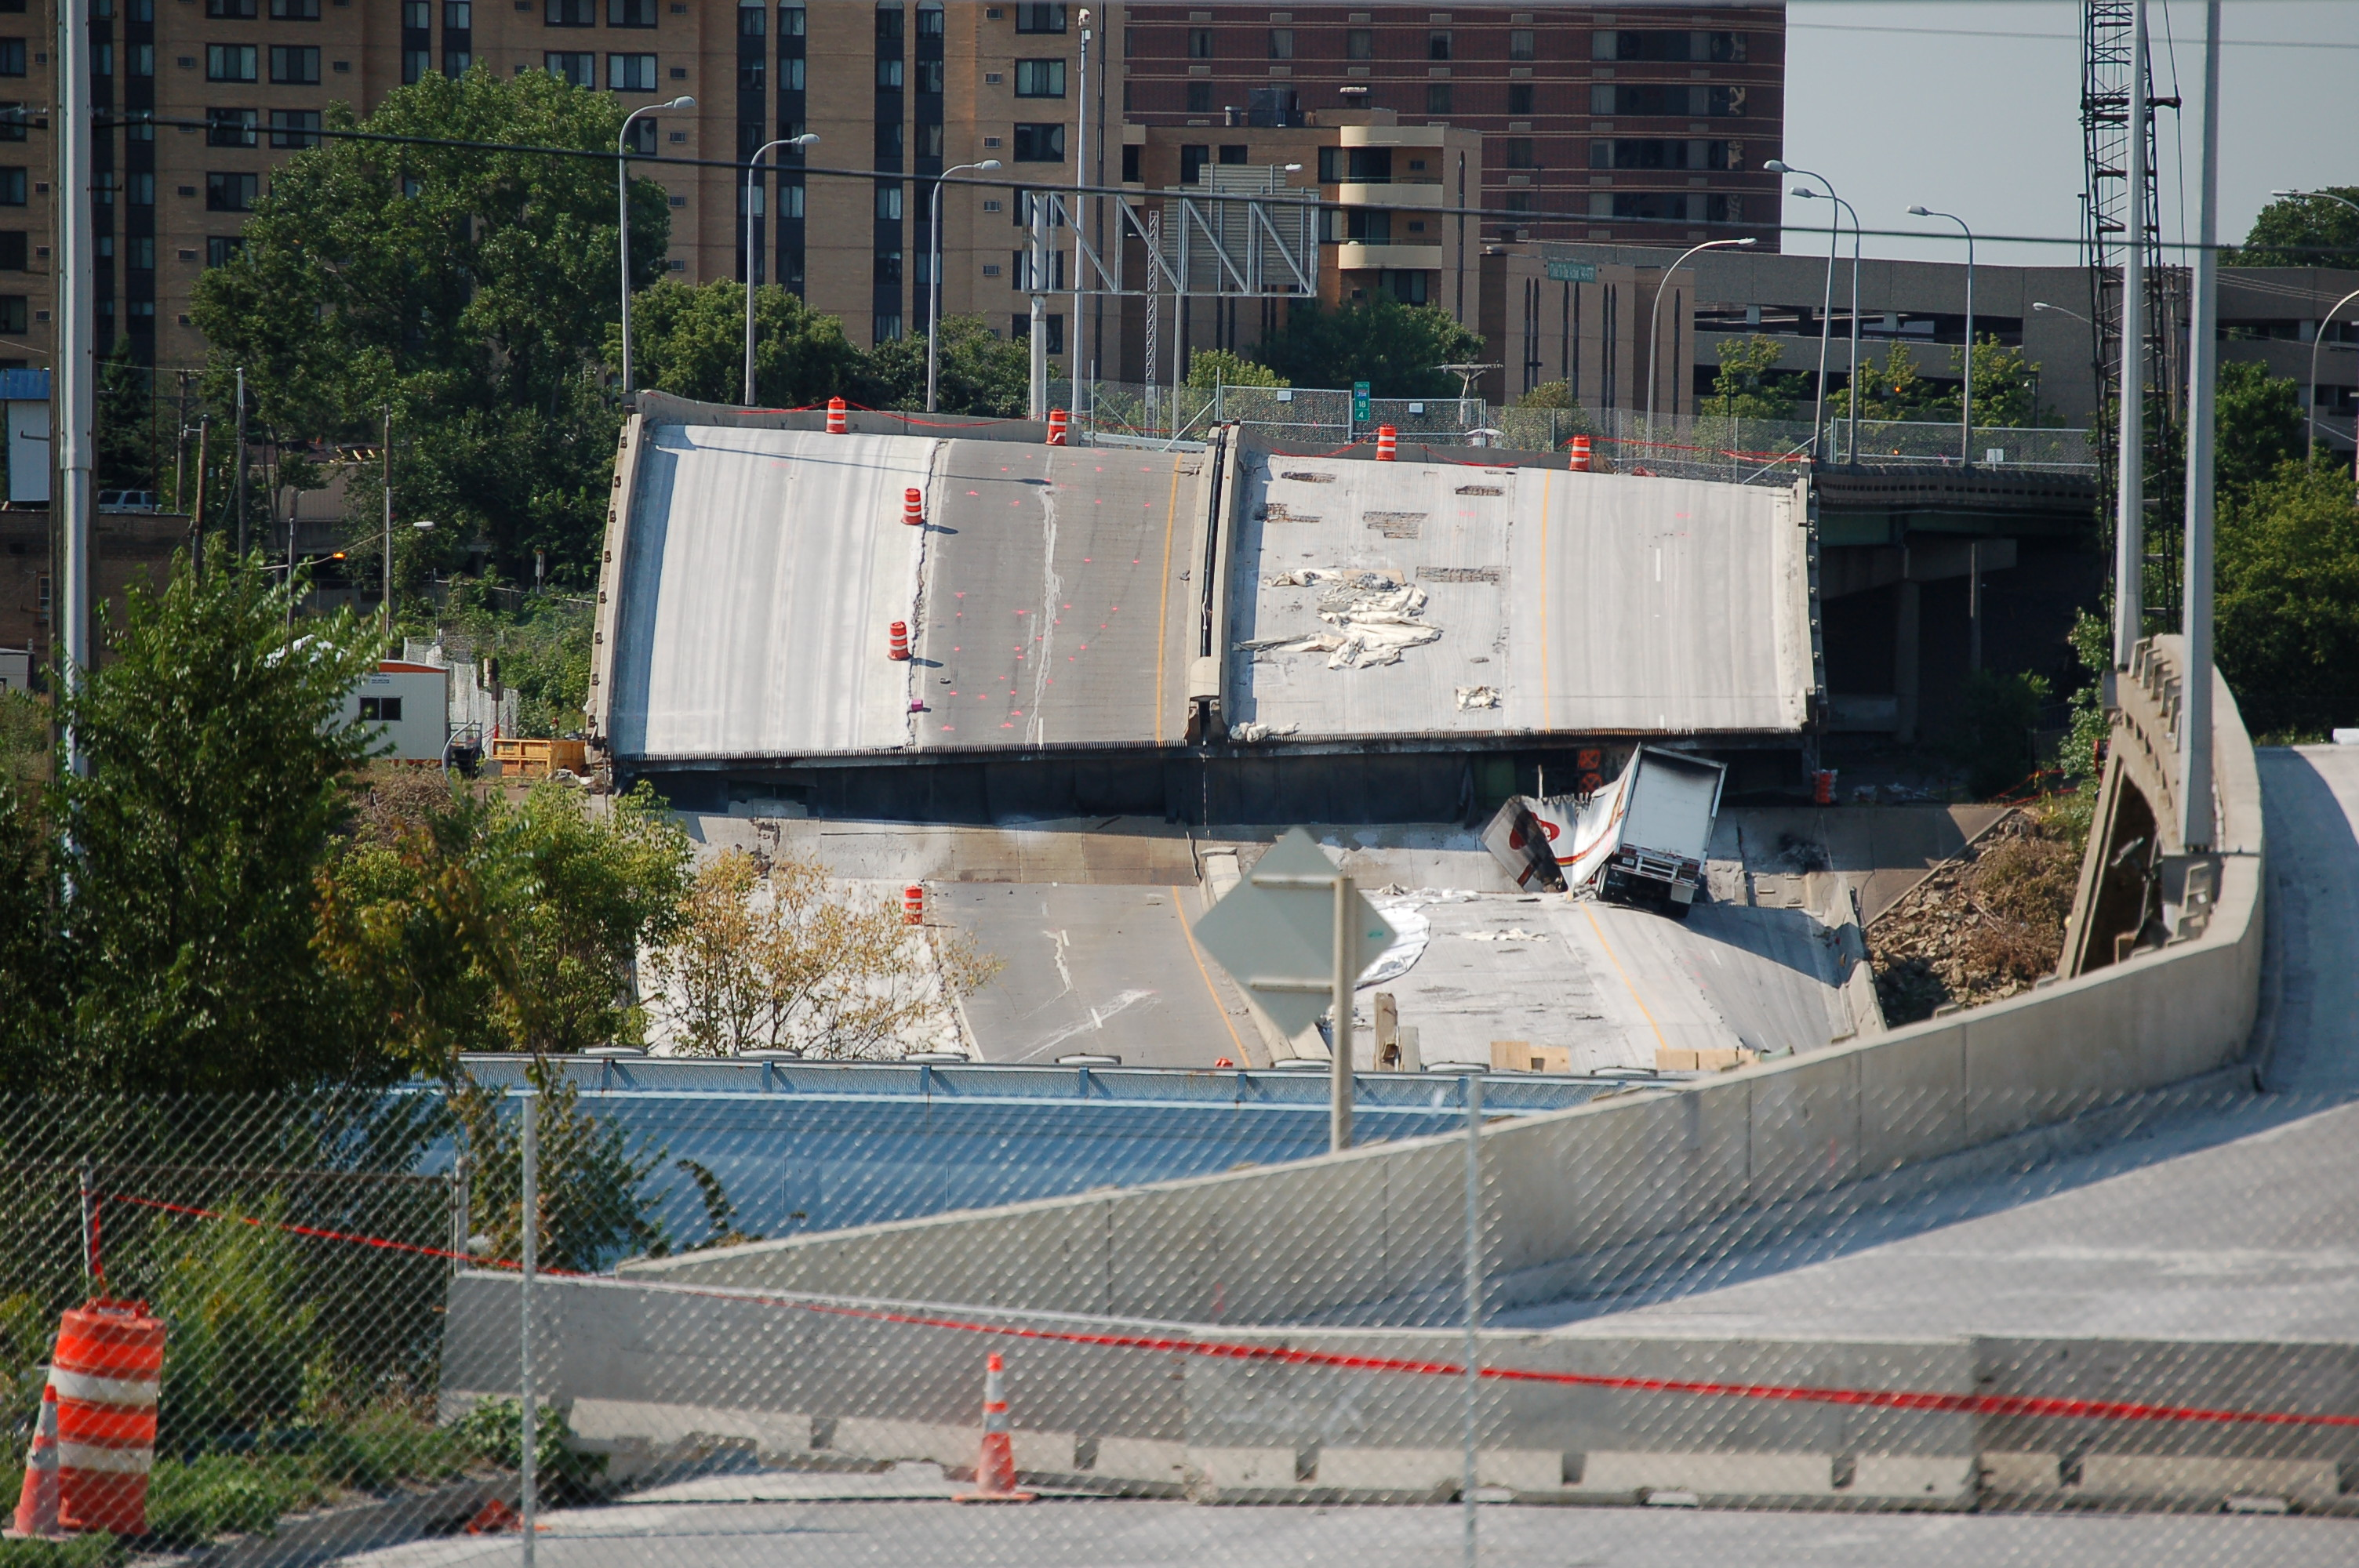 Photo of the I-35 bridge collapse in MInneapolis taken by Sen. Branan.